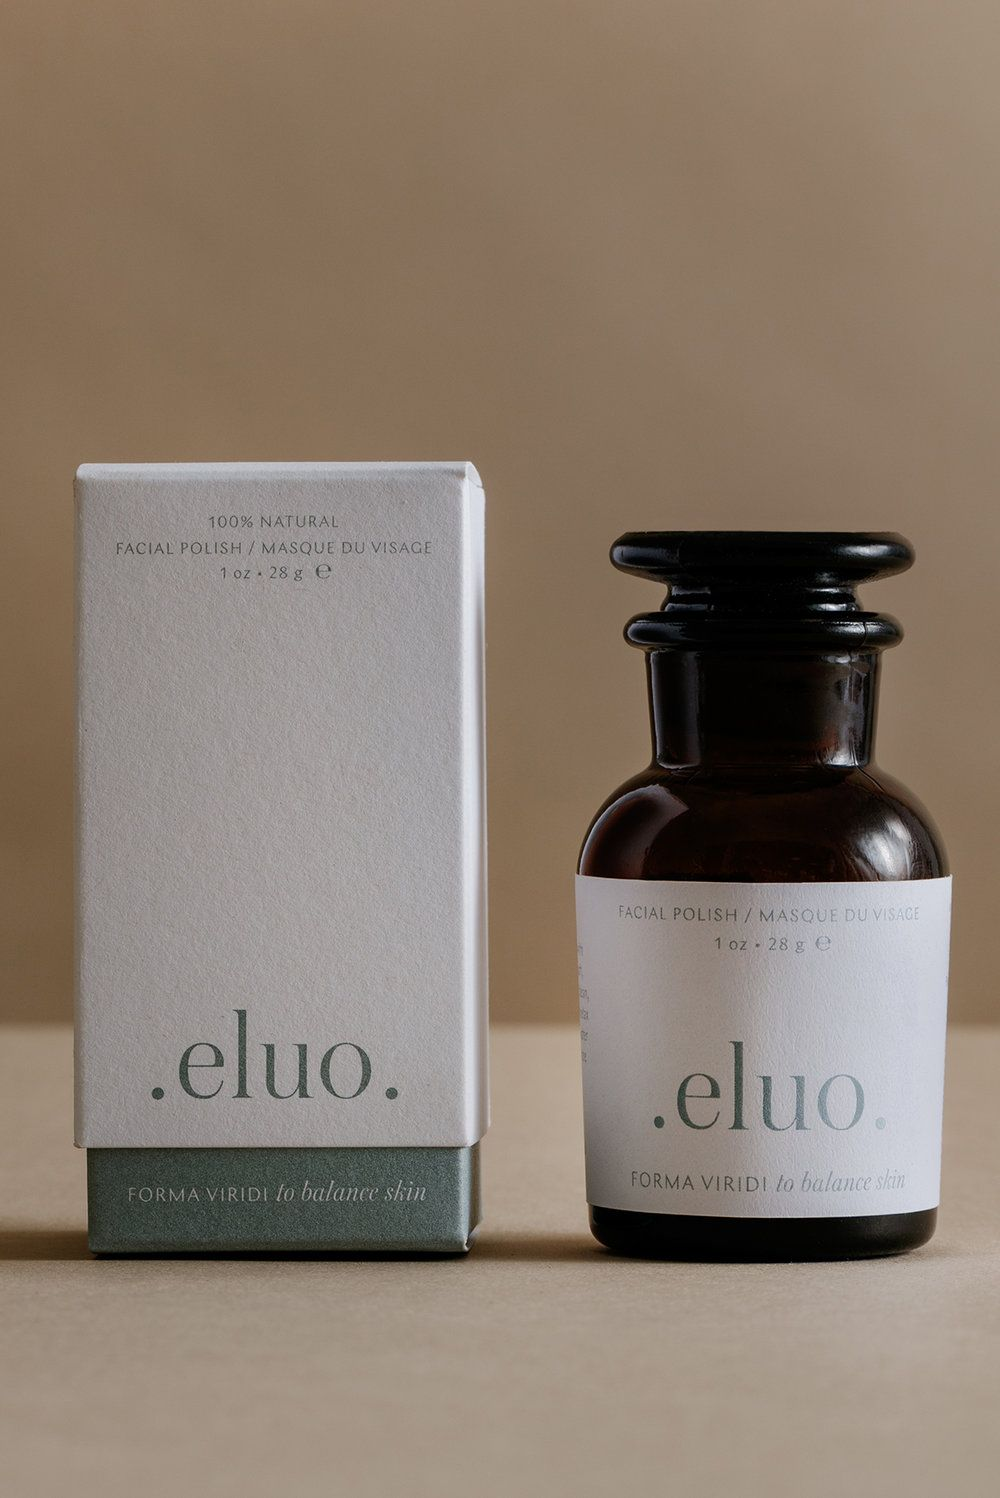 Eluo Skincare Line Packaging Design From Canada (With